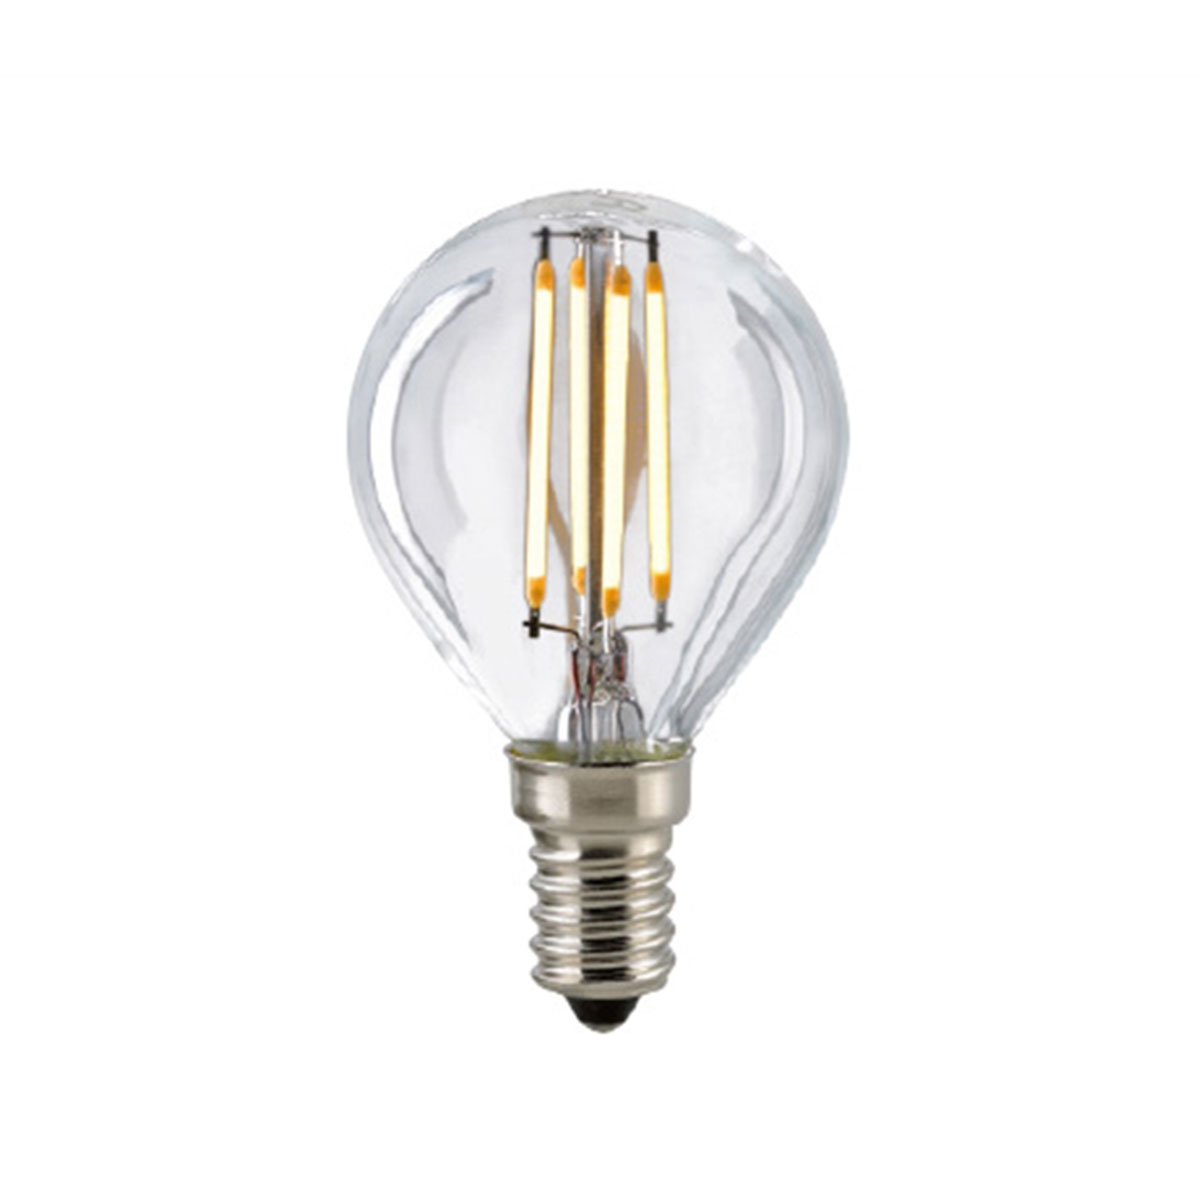 Led E14 Dimmbar Sigor Led Filament Kugellampe E14 5 W Warmweiß Dimmbar